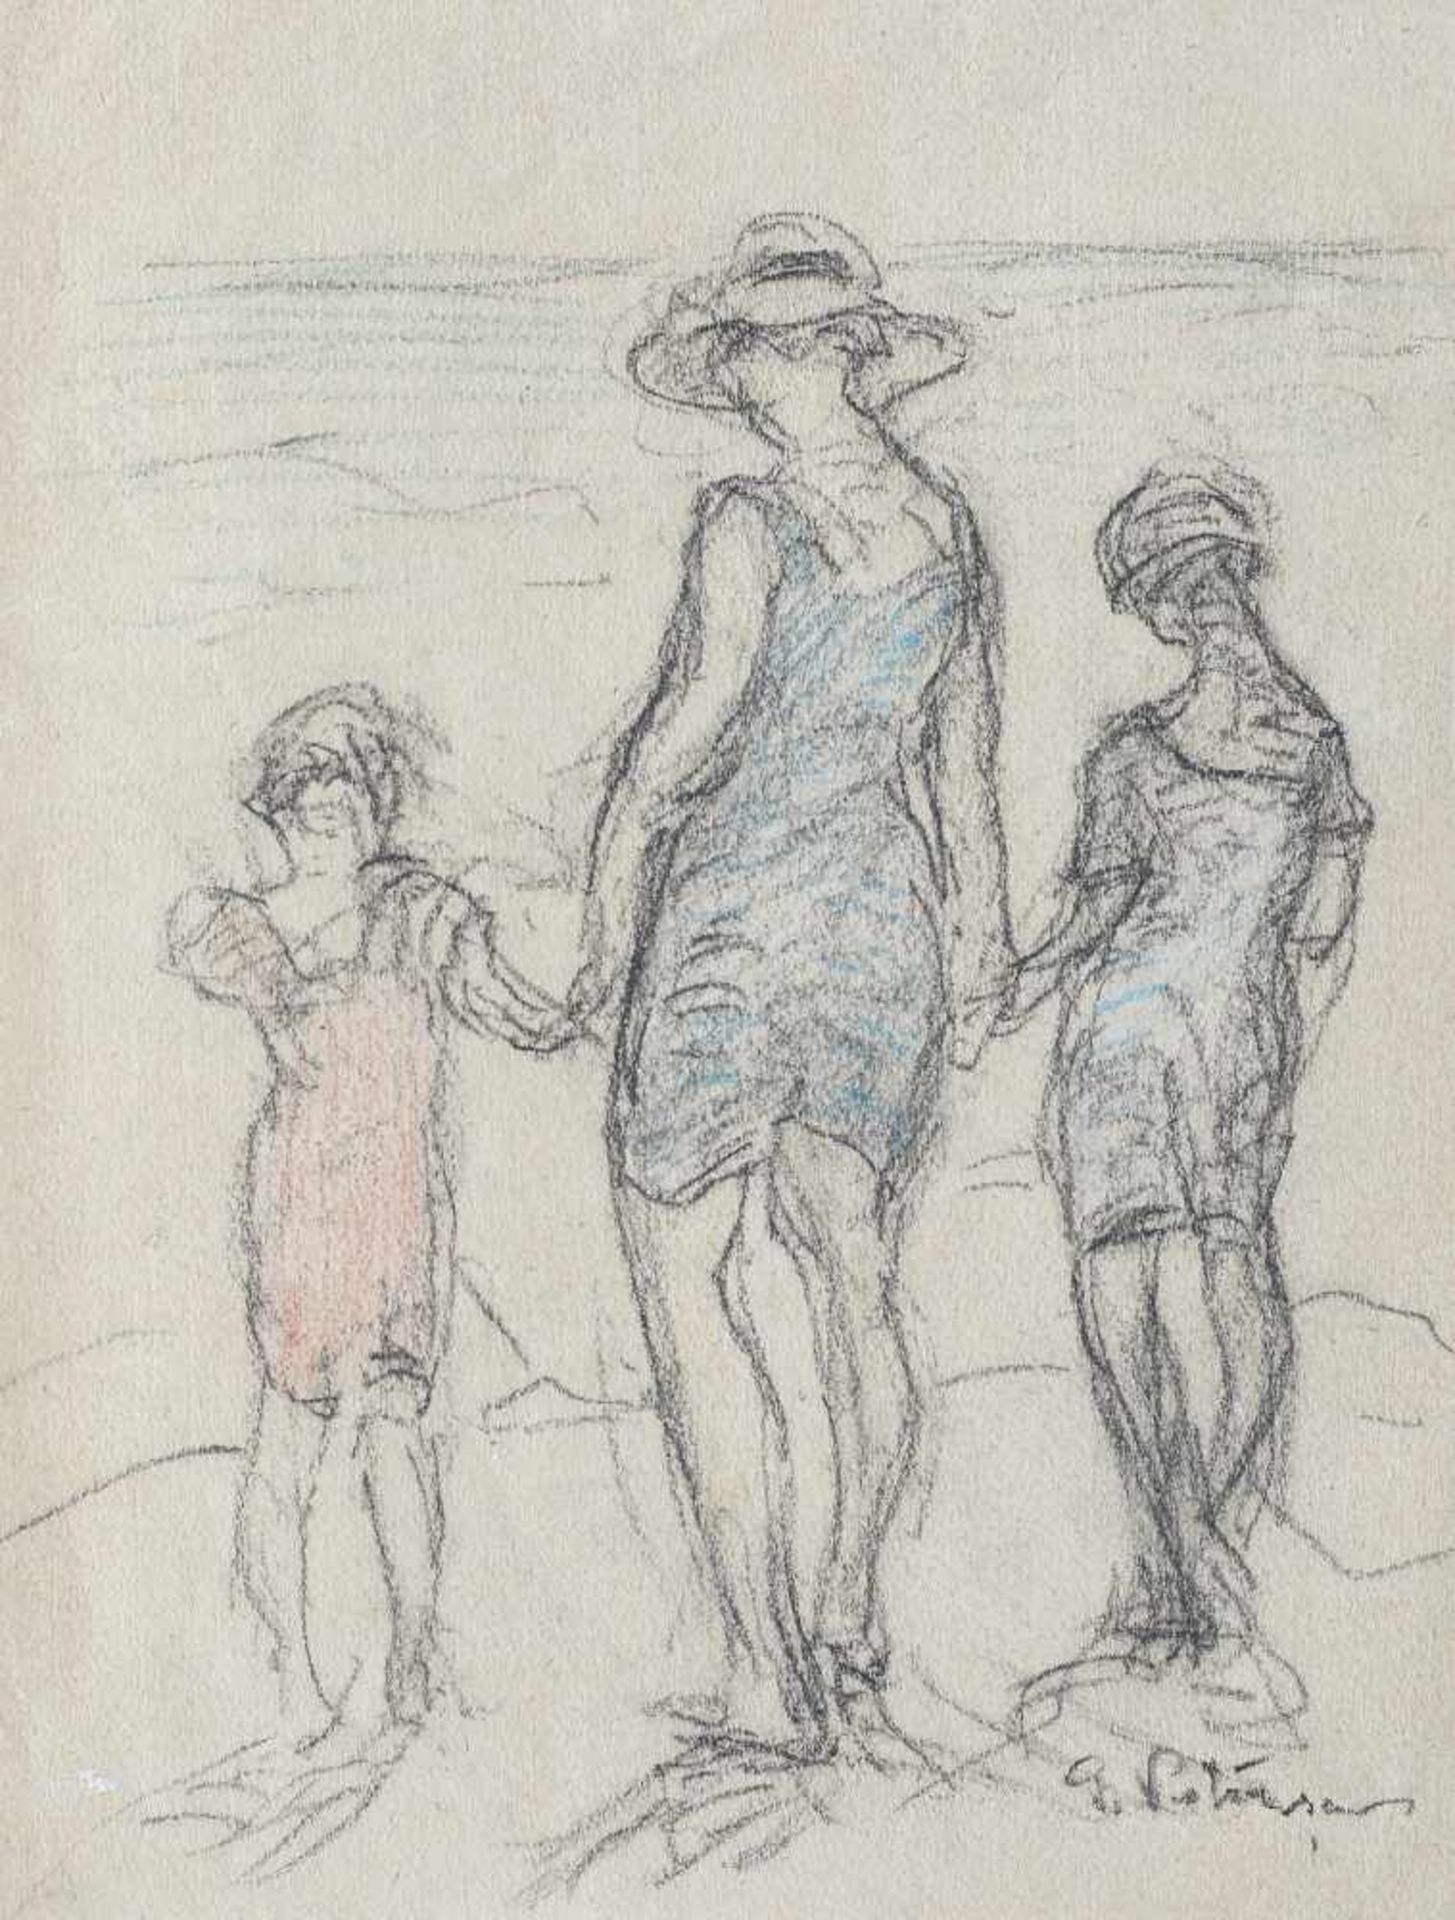 Gheorghe Petraşcu, At the Beach (Mariana, Lucreția and Pichi Petrașcu)